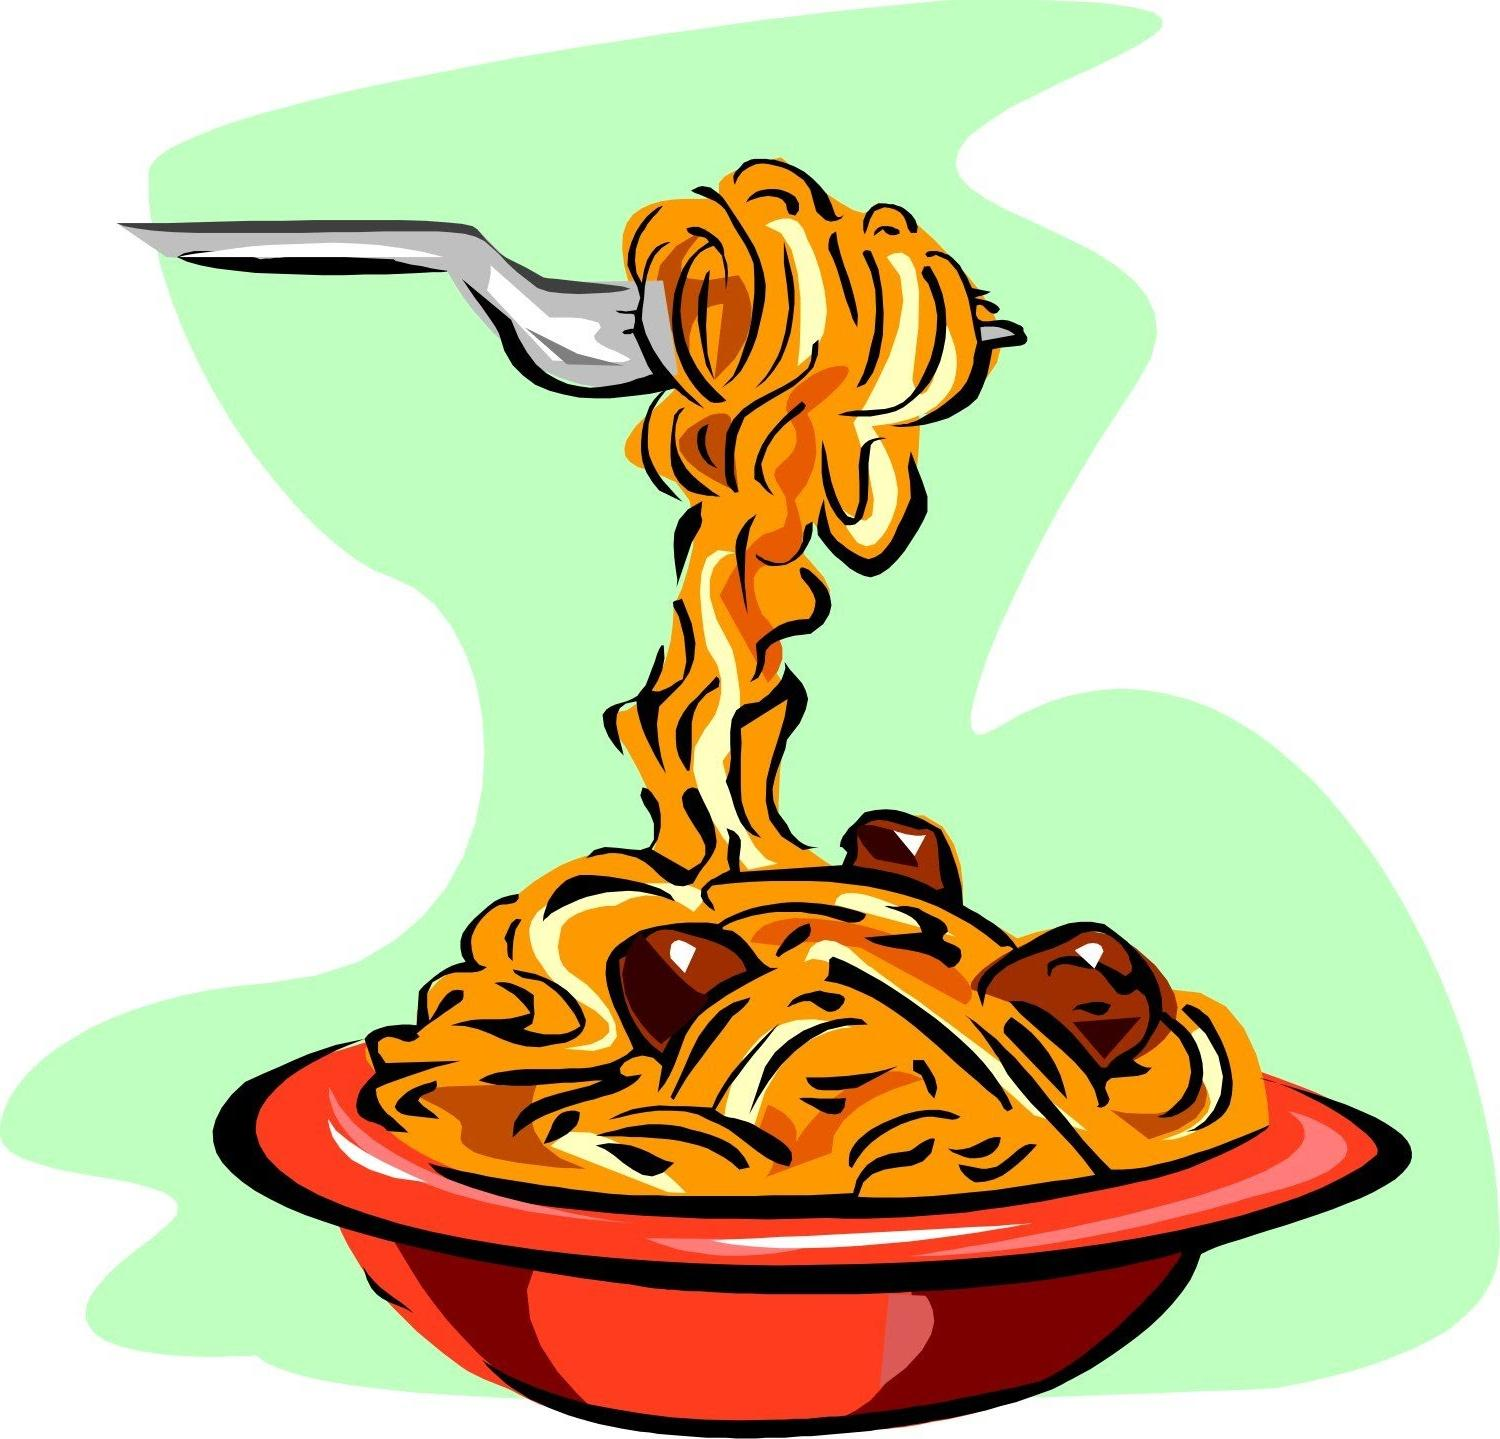 Bowl Of Pasta Clipart.